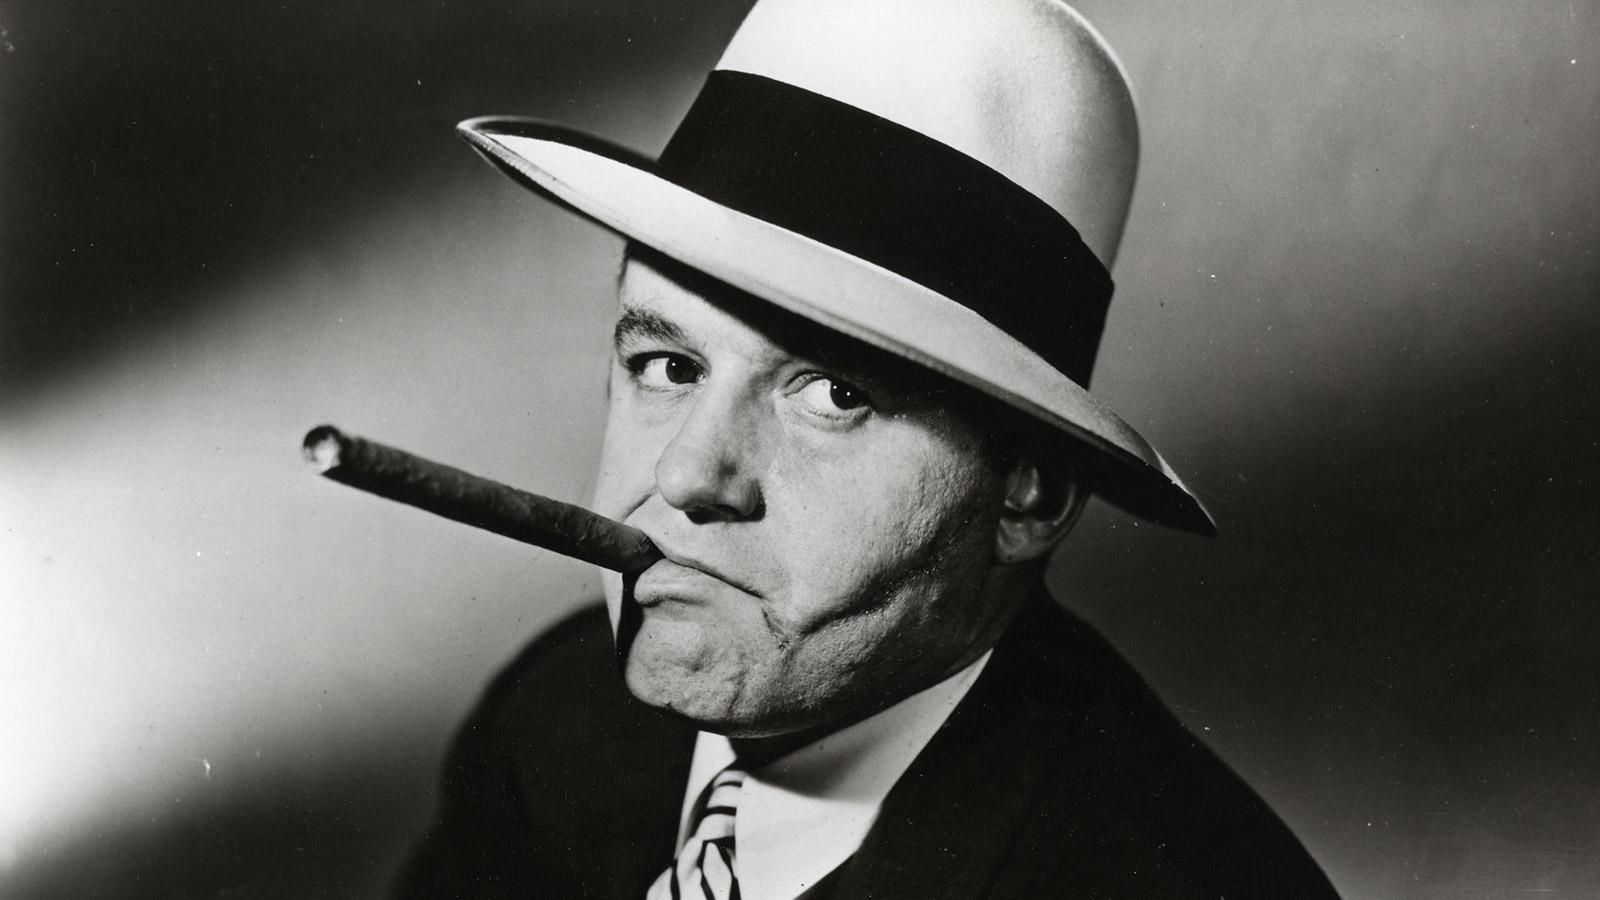 Actor Rod Steiger played notorious gangster Al Capone in a 1959 film.